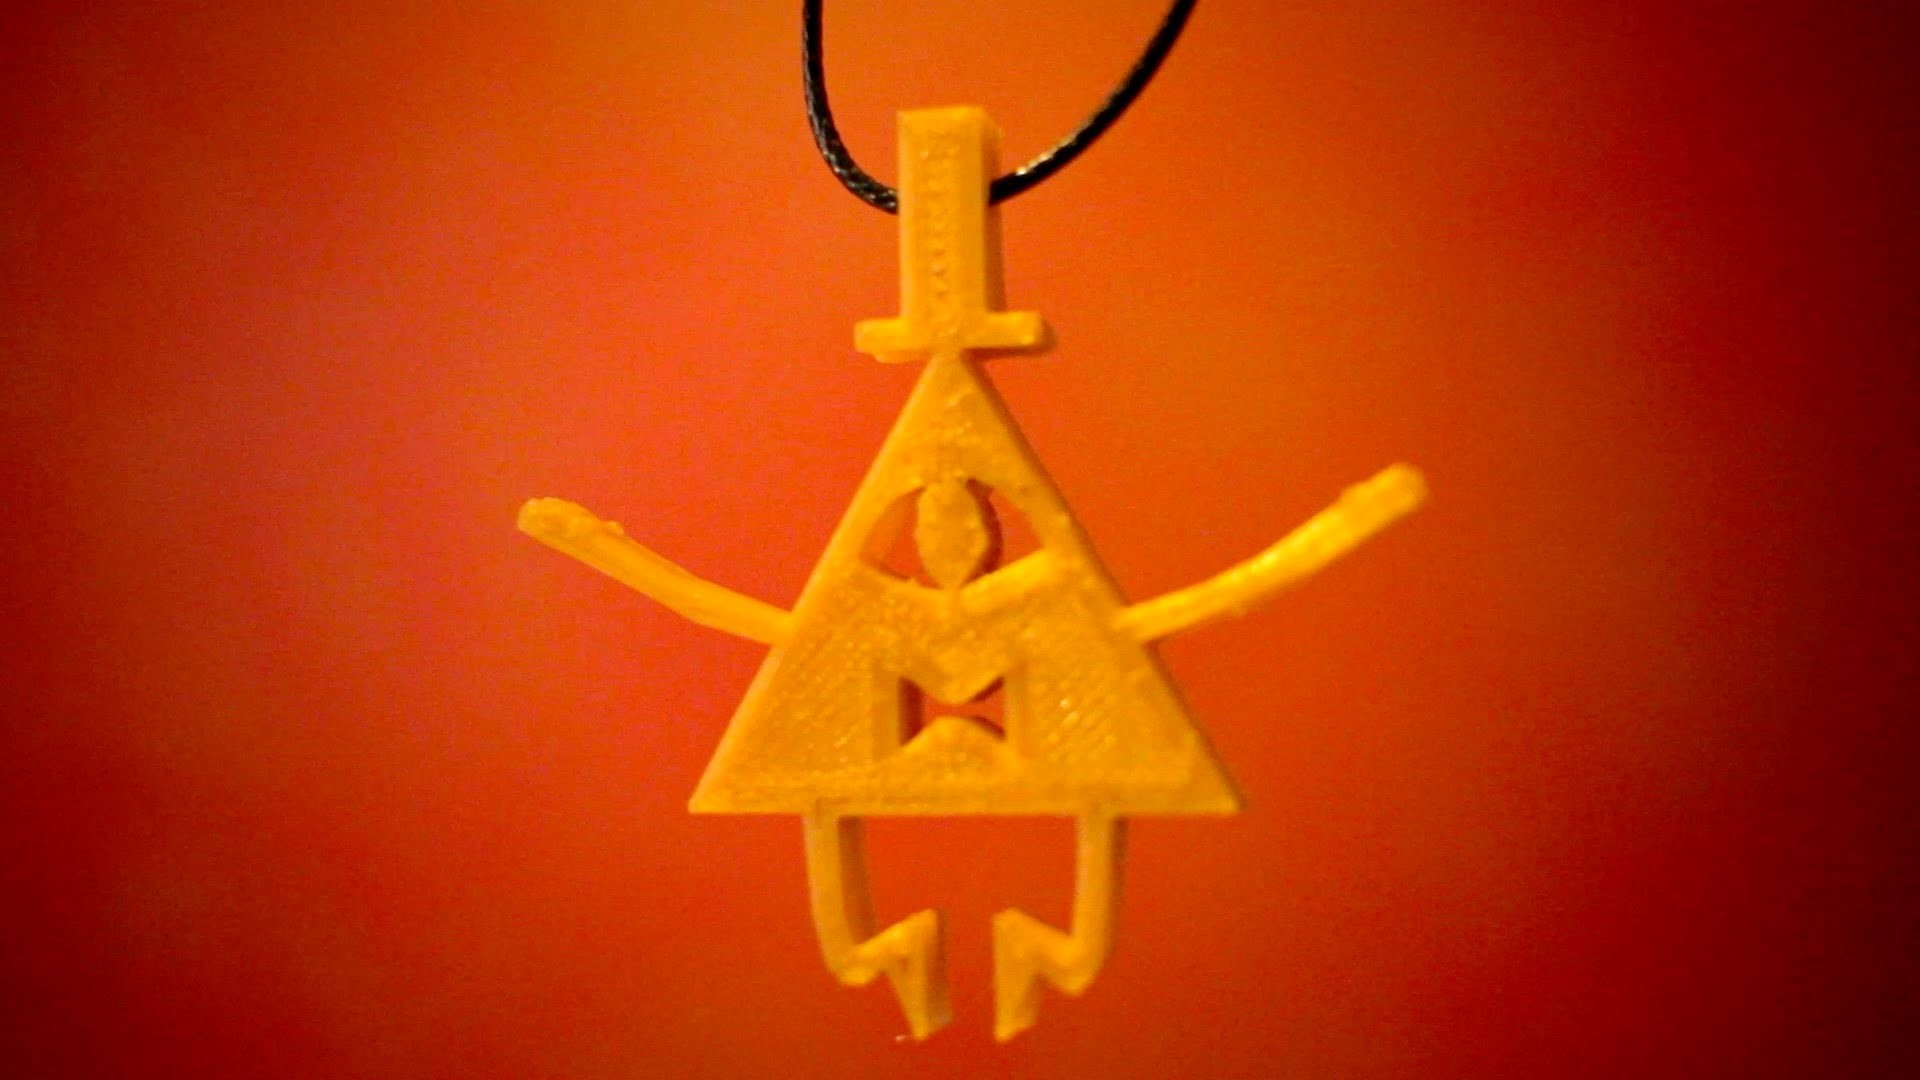 Gravity Falls Bill Cipher Wallpaper Phone Gravity Falls Bill Cipher Wallpaper 80 Images